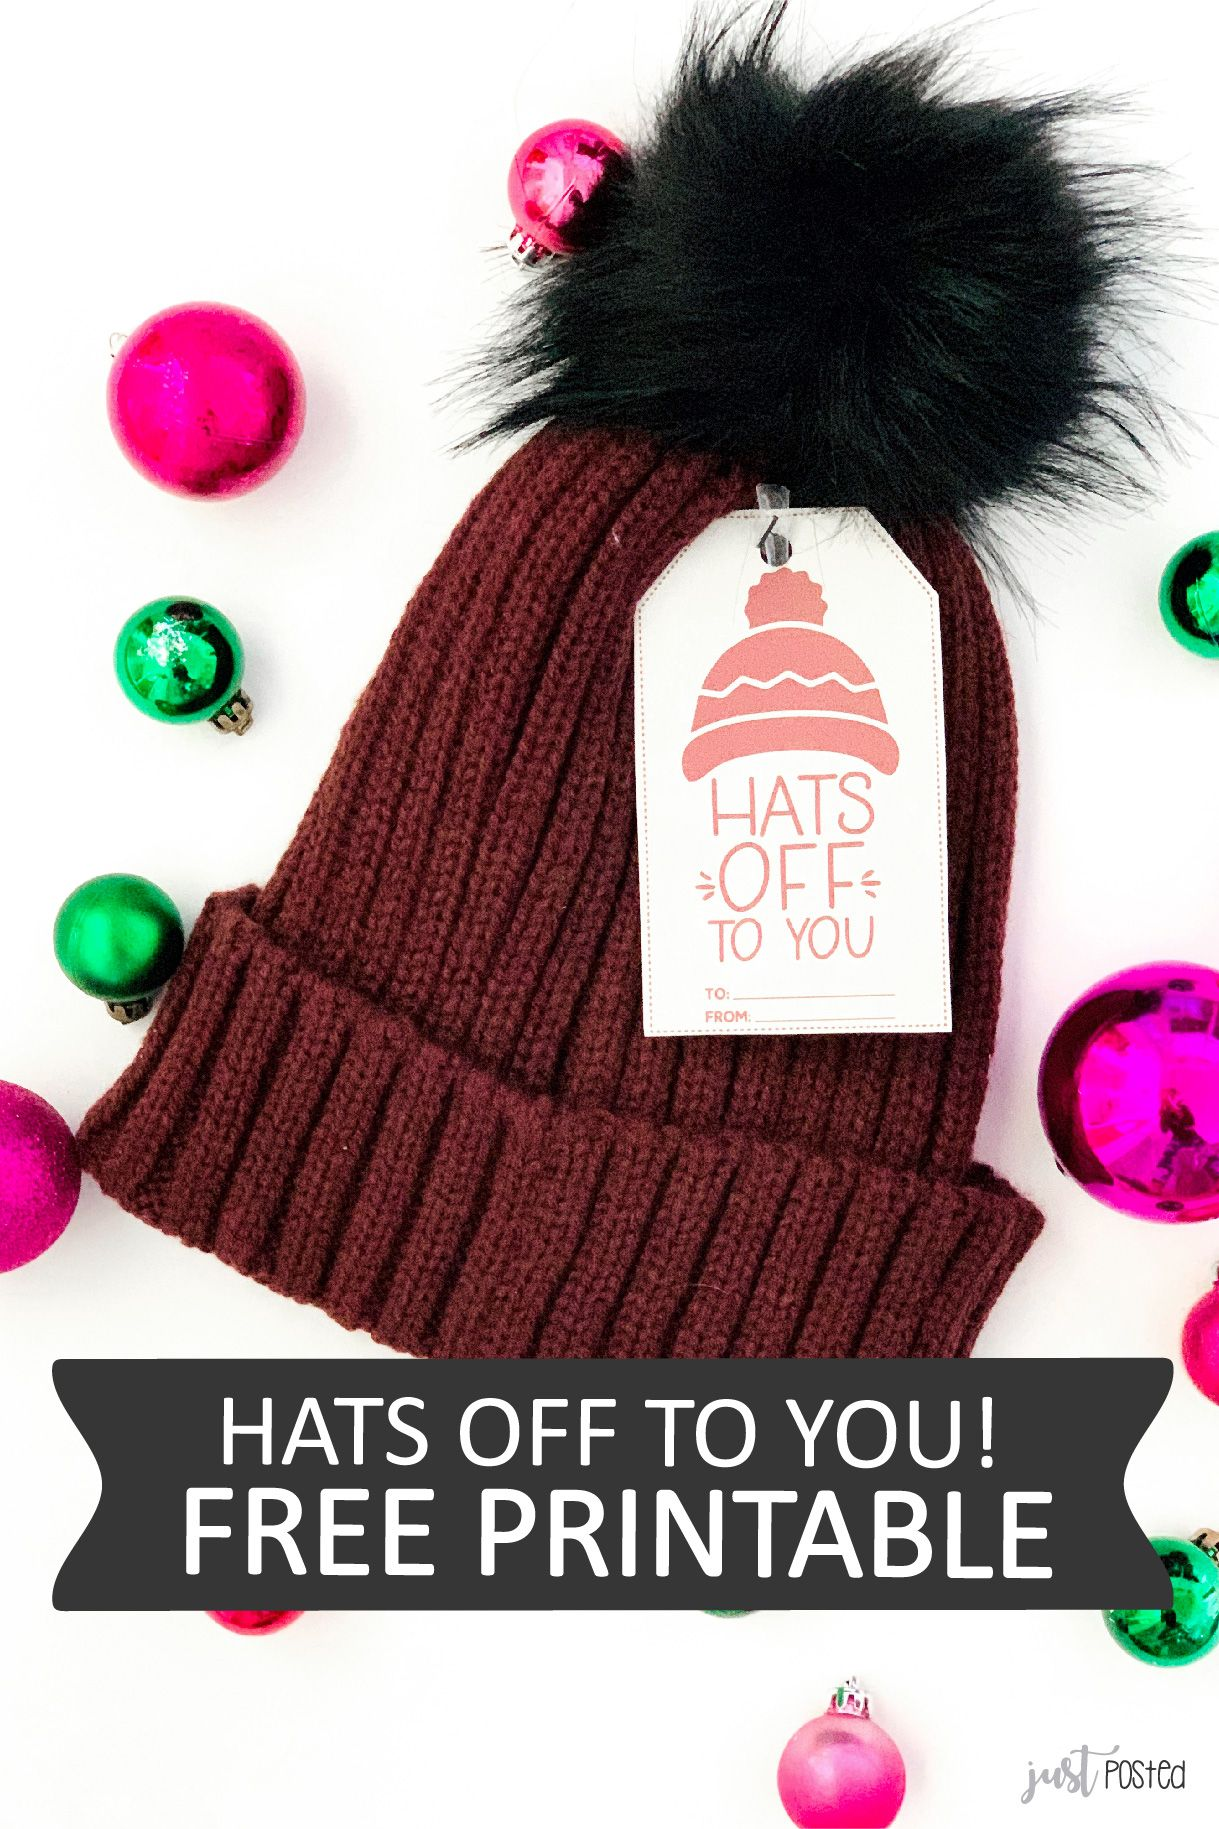 Hats Off To You Free Printable Gift Idea Perfect For A Teacher Or Friend Free Printable Gifts Printable Gift Free Gift Tags